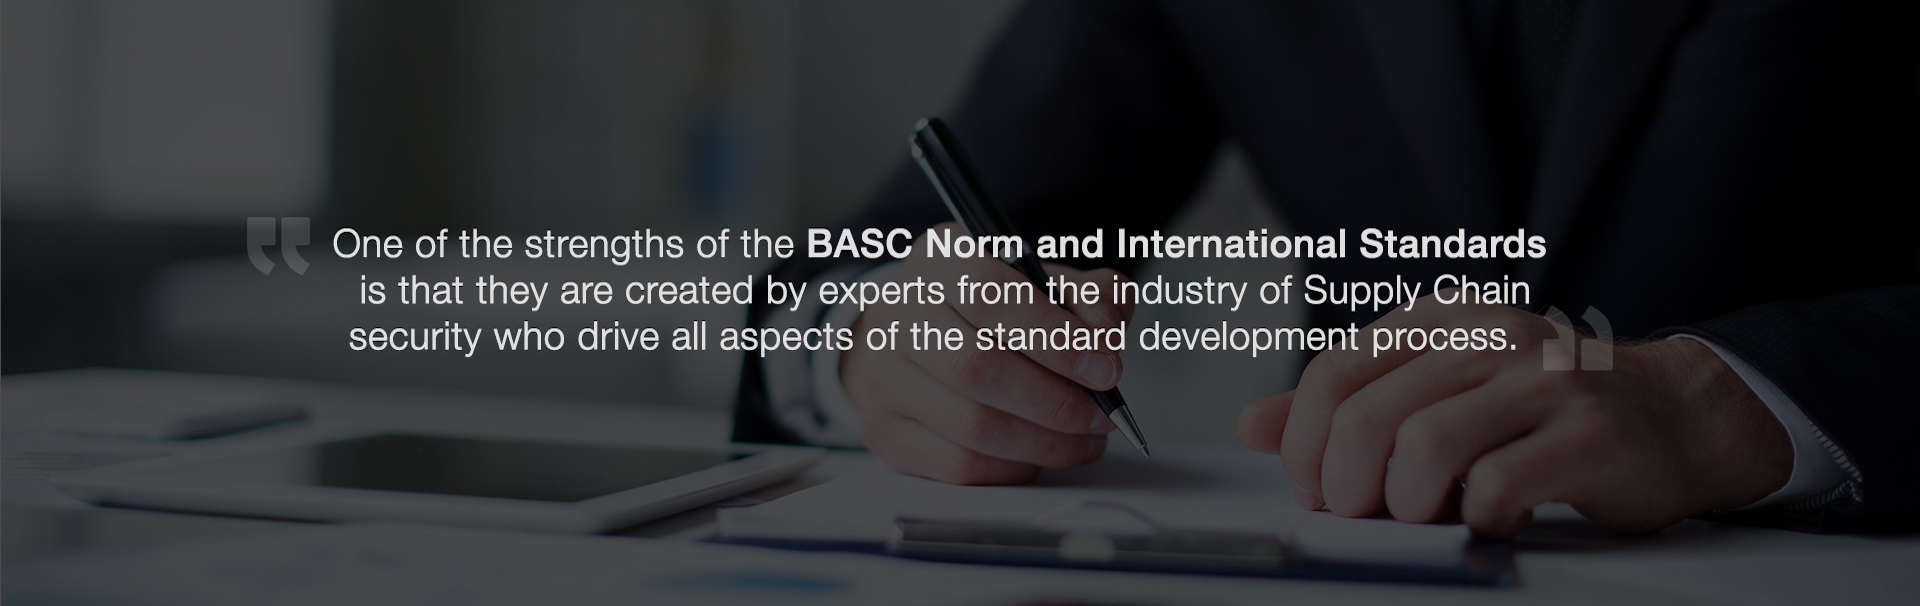 Basc norm and standards